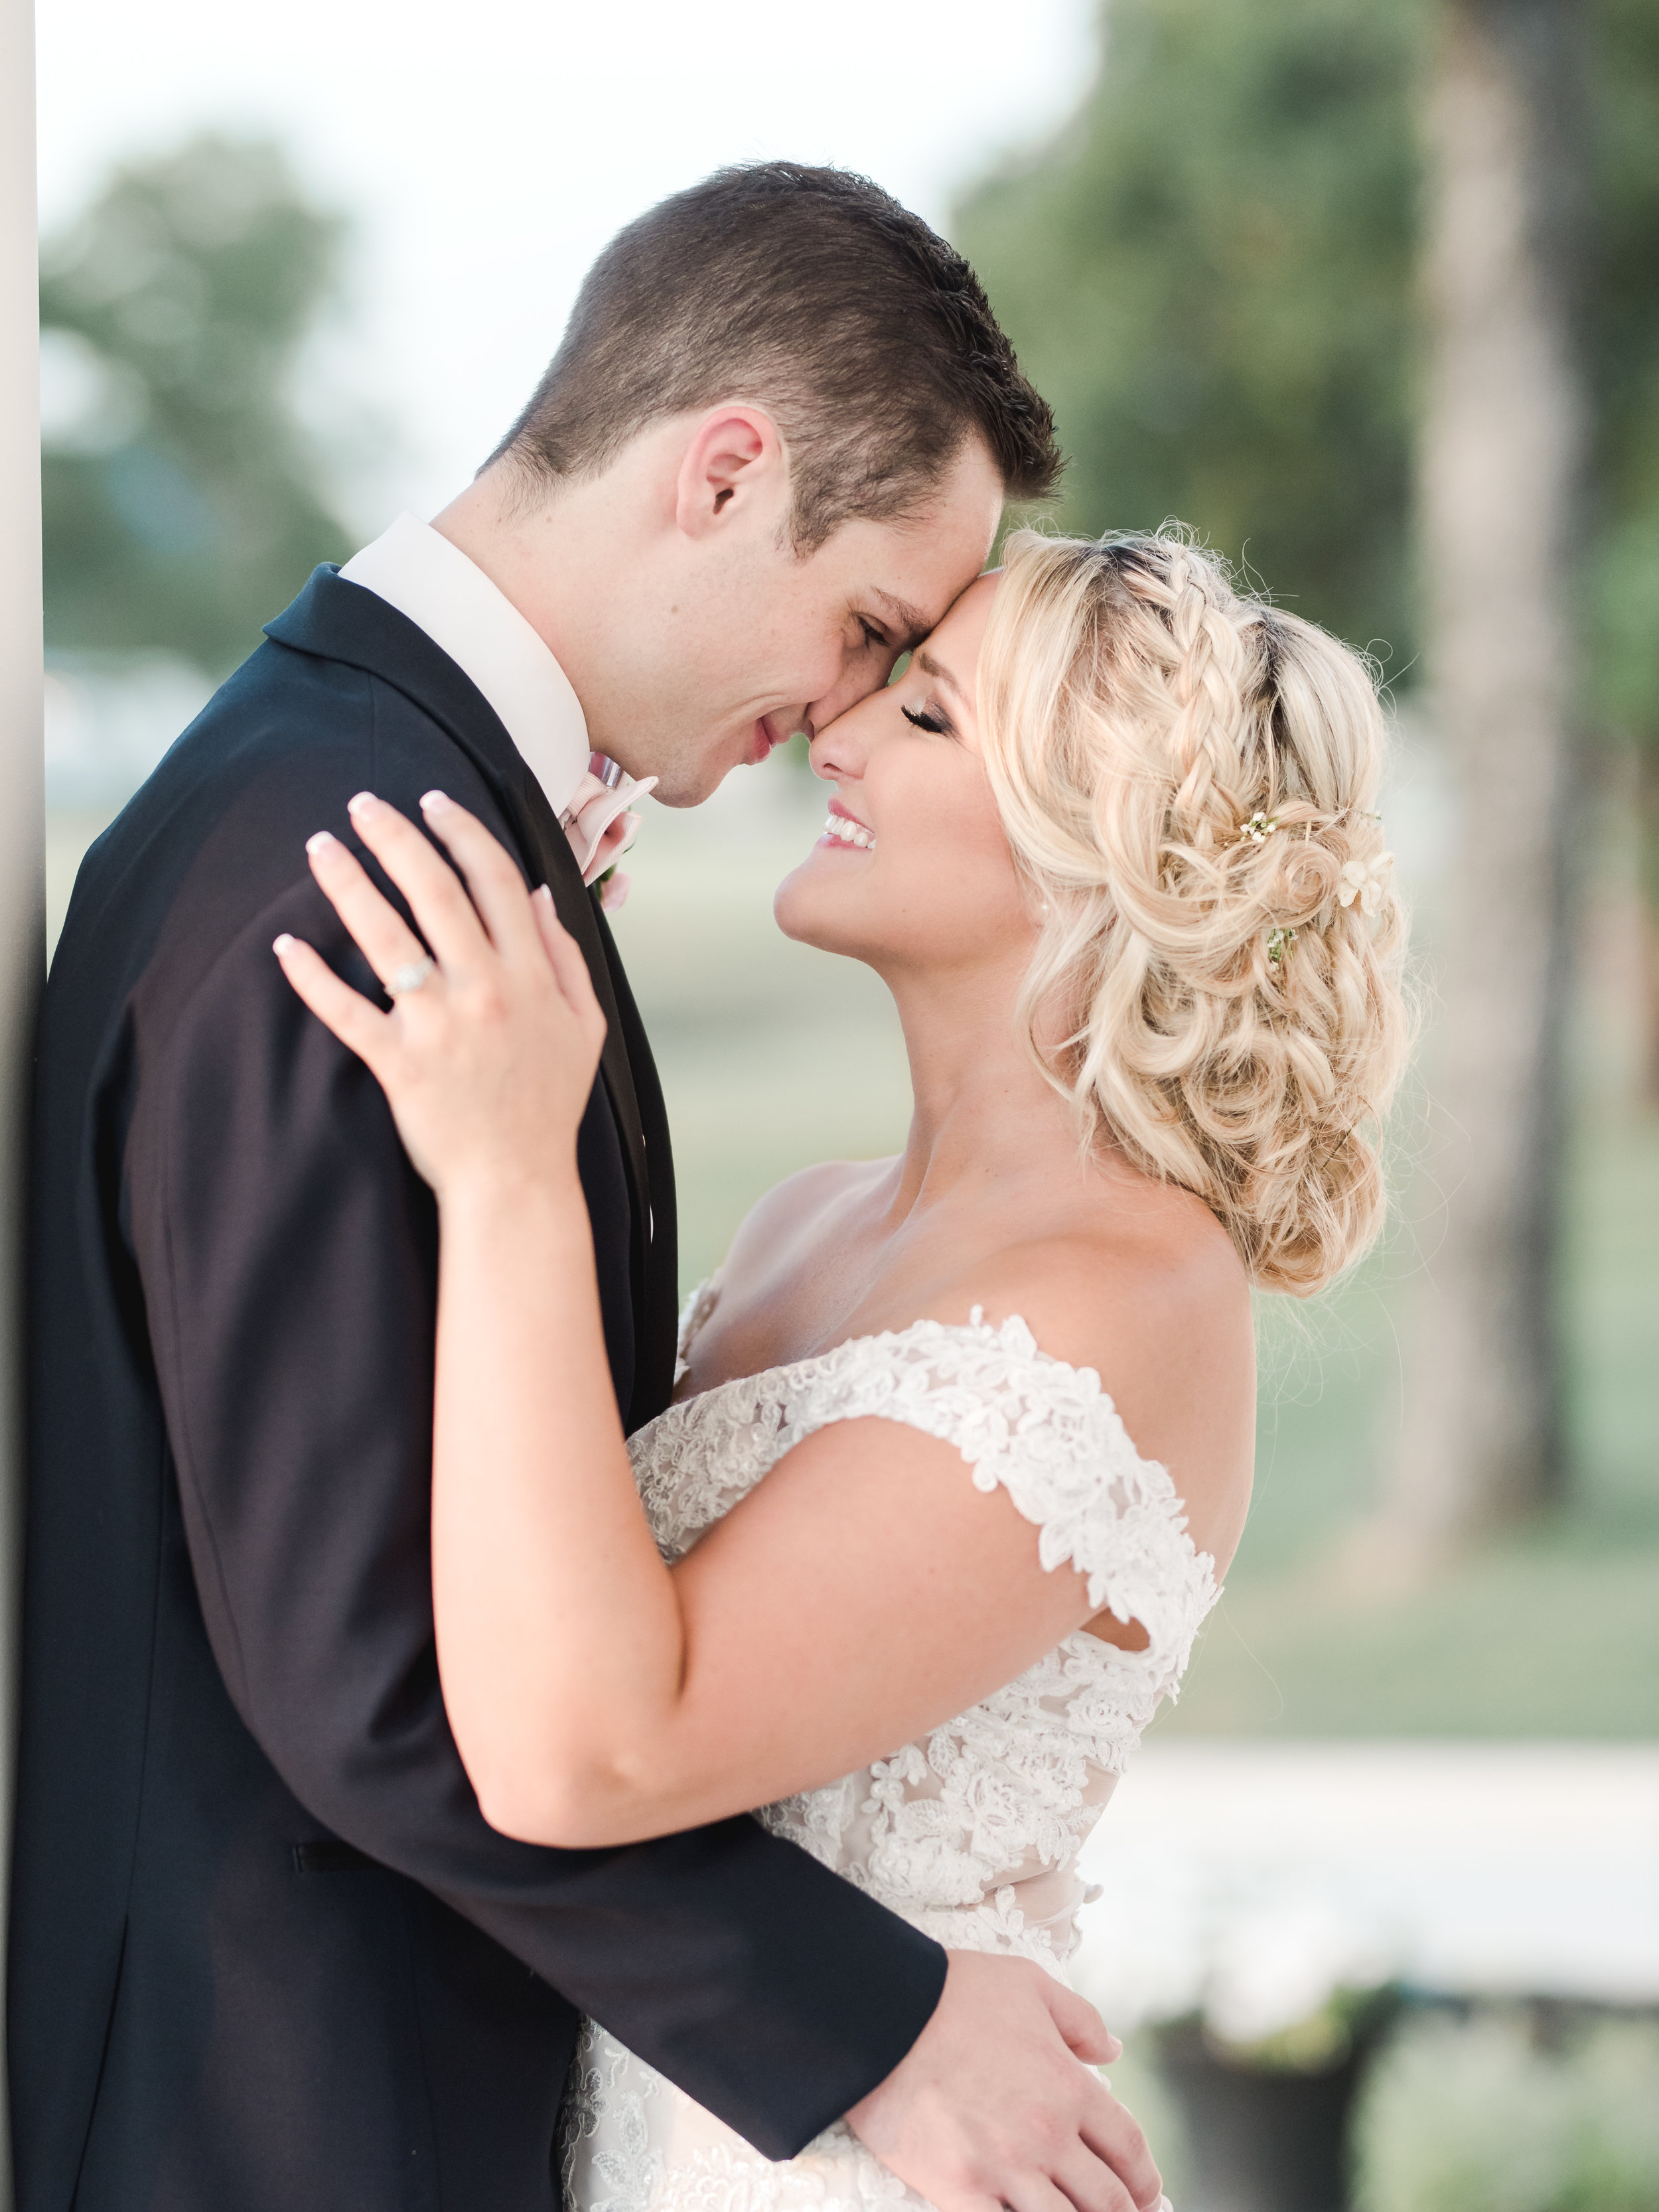 Jessica + bradon - Jen did a fabulous job at capturing every special moment for my husband and I. We love looking back at pictures and reliving our best day! She is so professional and takes in every detail.